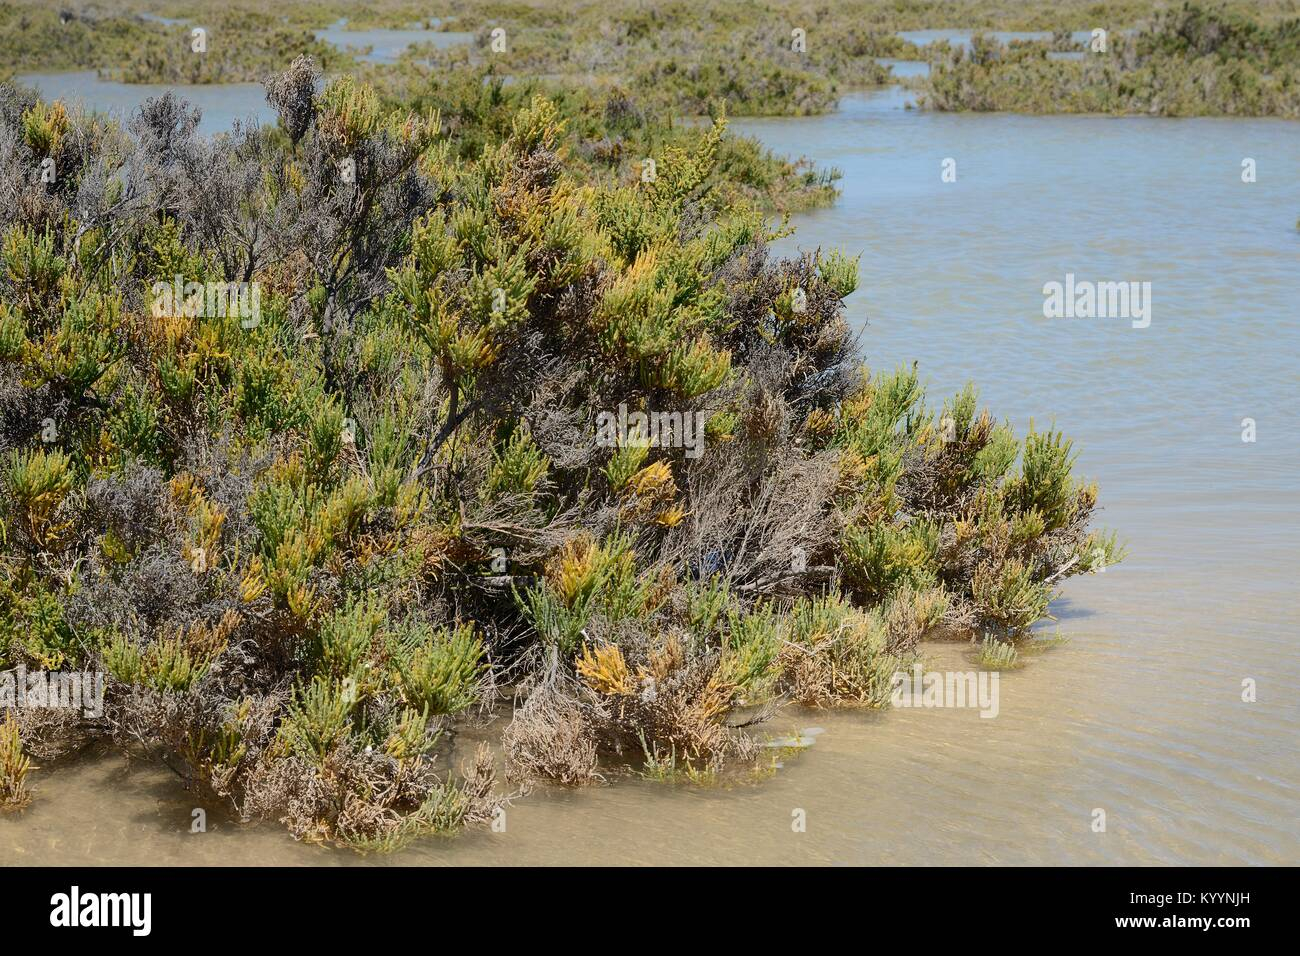 Glaucous glasswort (Arthrocnemum macrostachyum) bushes partly submerged by a high tide in a coastal lagoon, Sotavento, Stock Photo